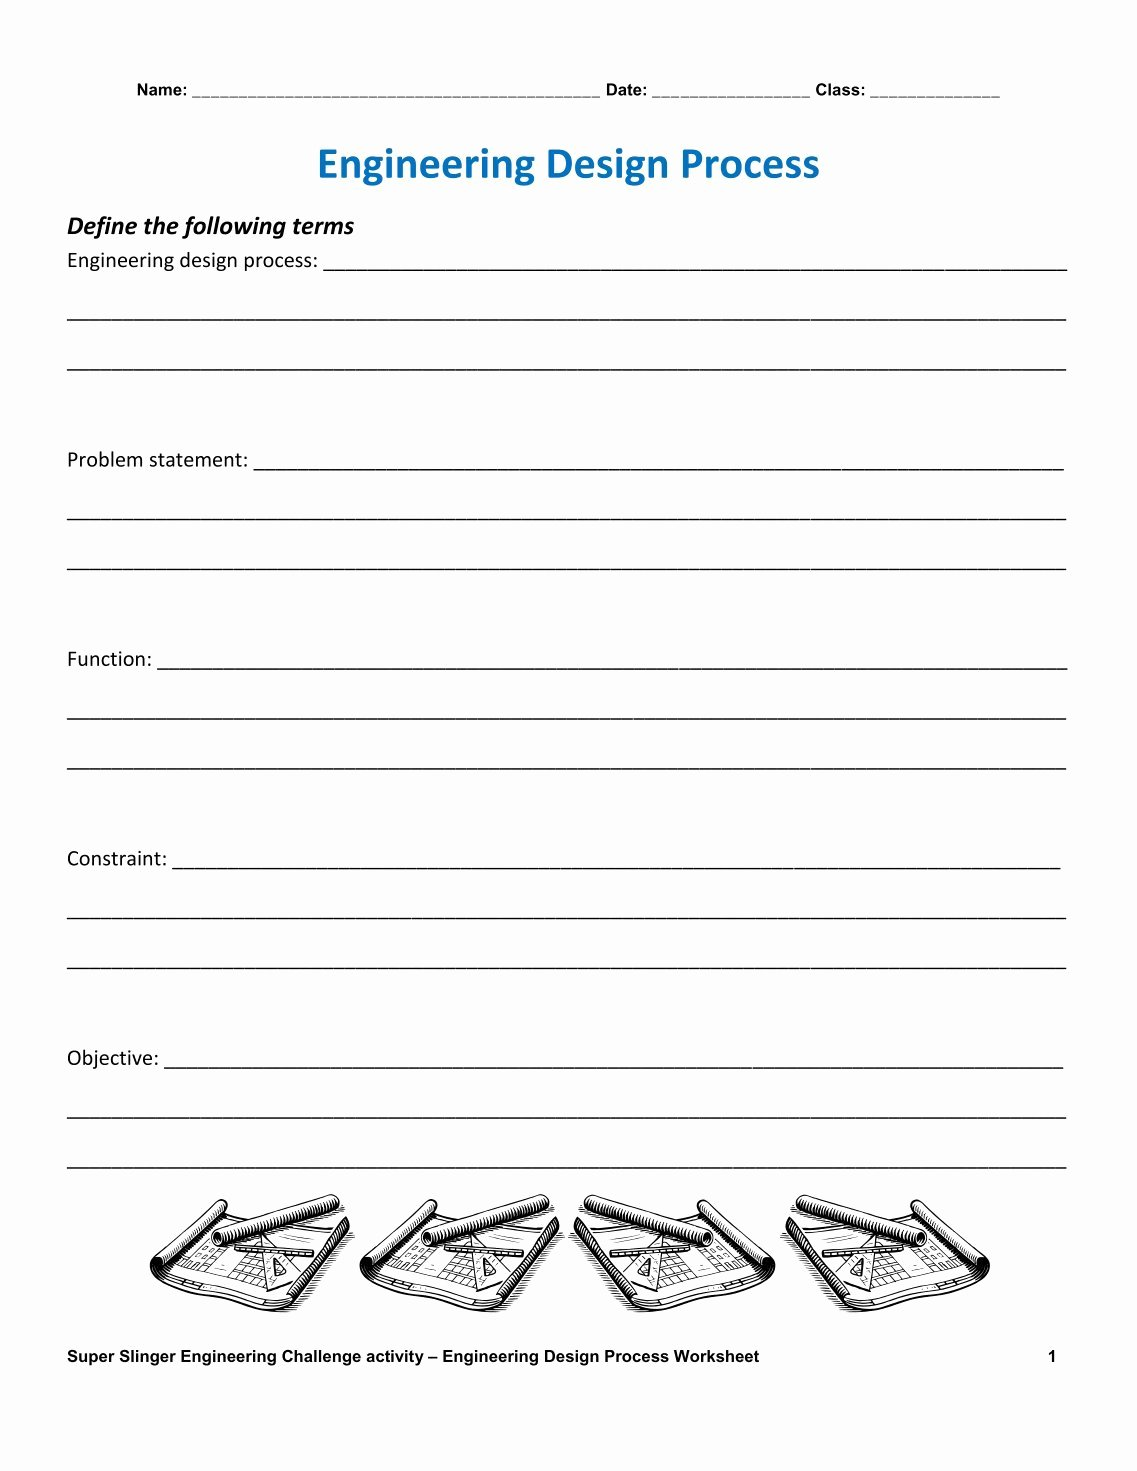 Engineering Design Process Worksheet Pdf New Viscosity Worksheet